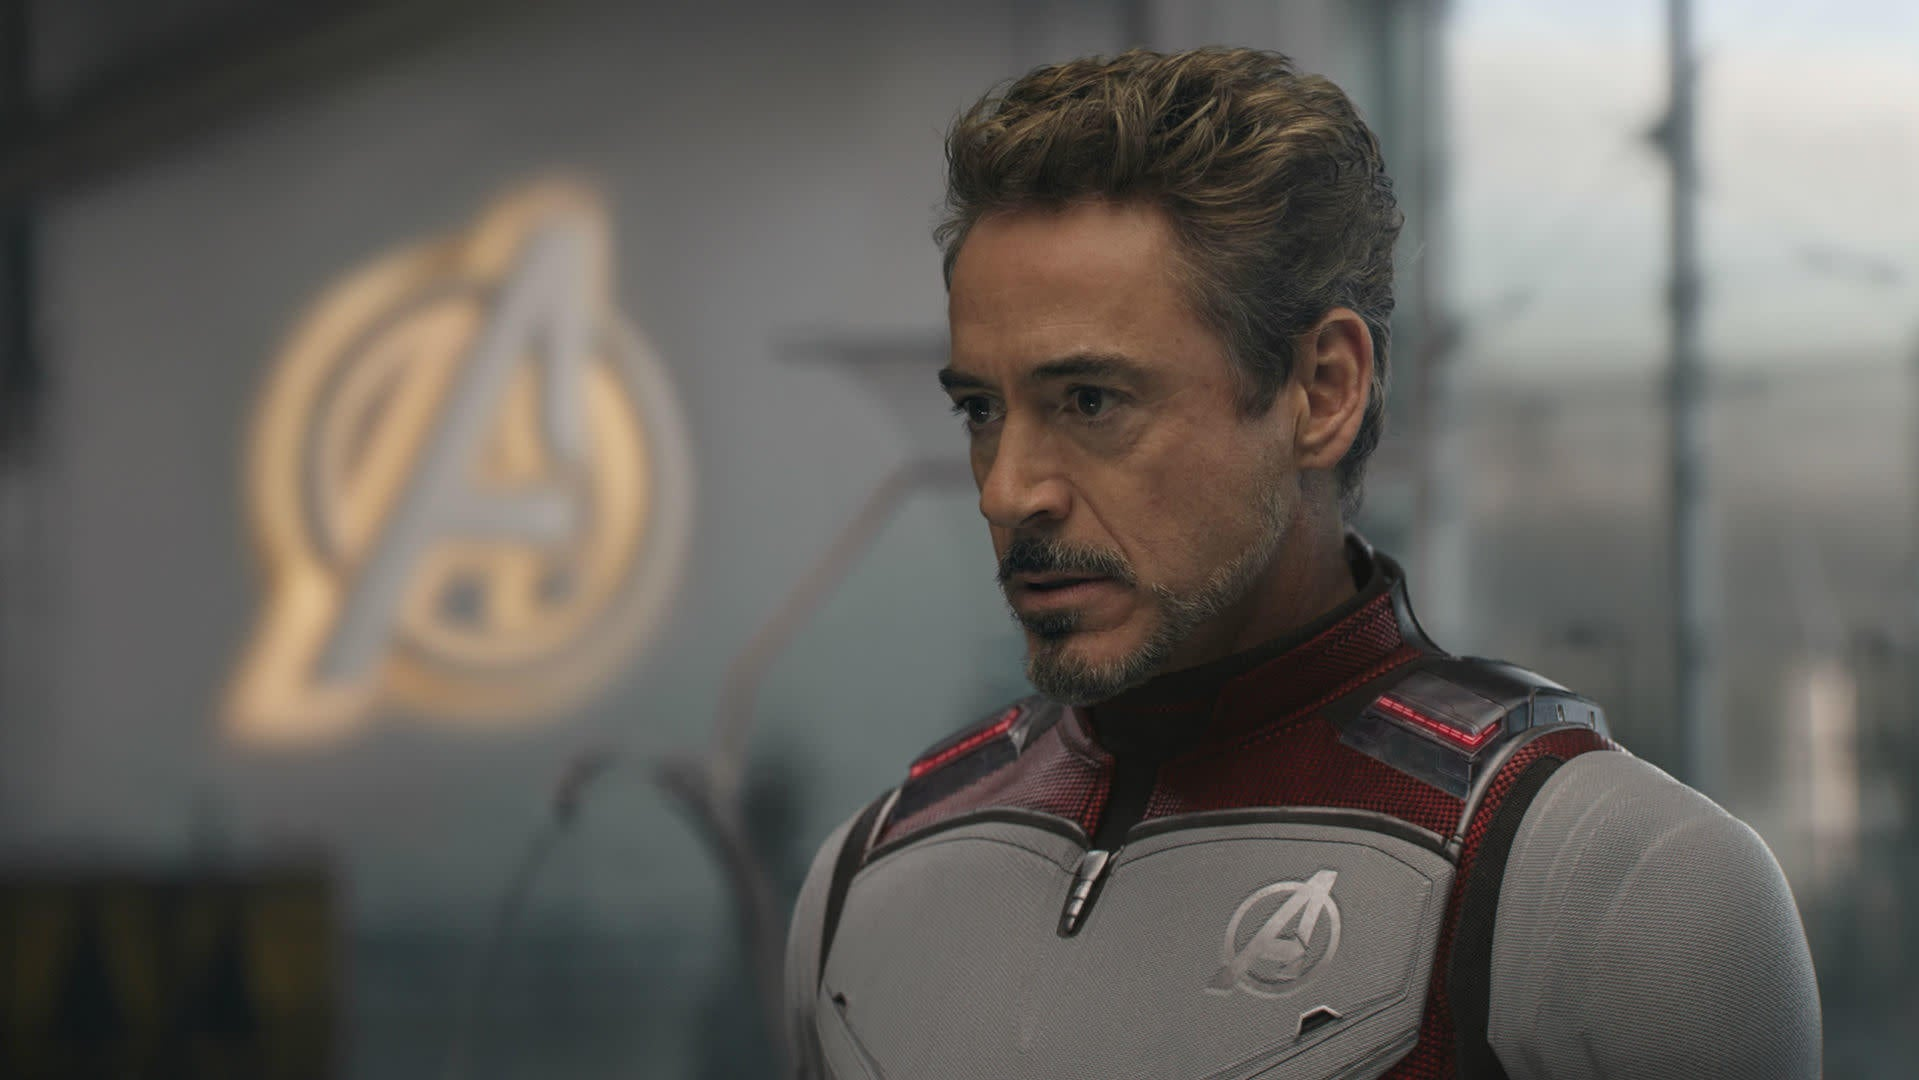 Watch Robert Downey Jr. And The Russos Fantasy Draft A Team Of Avengers